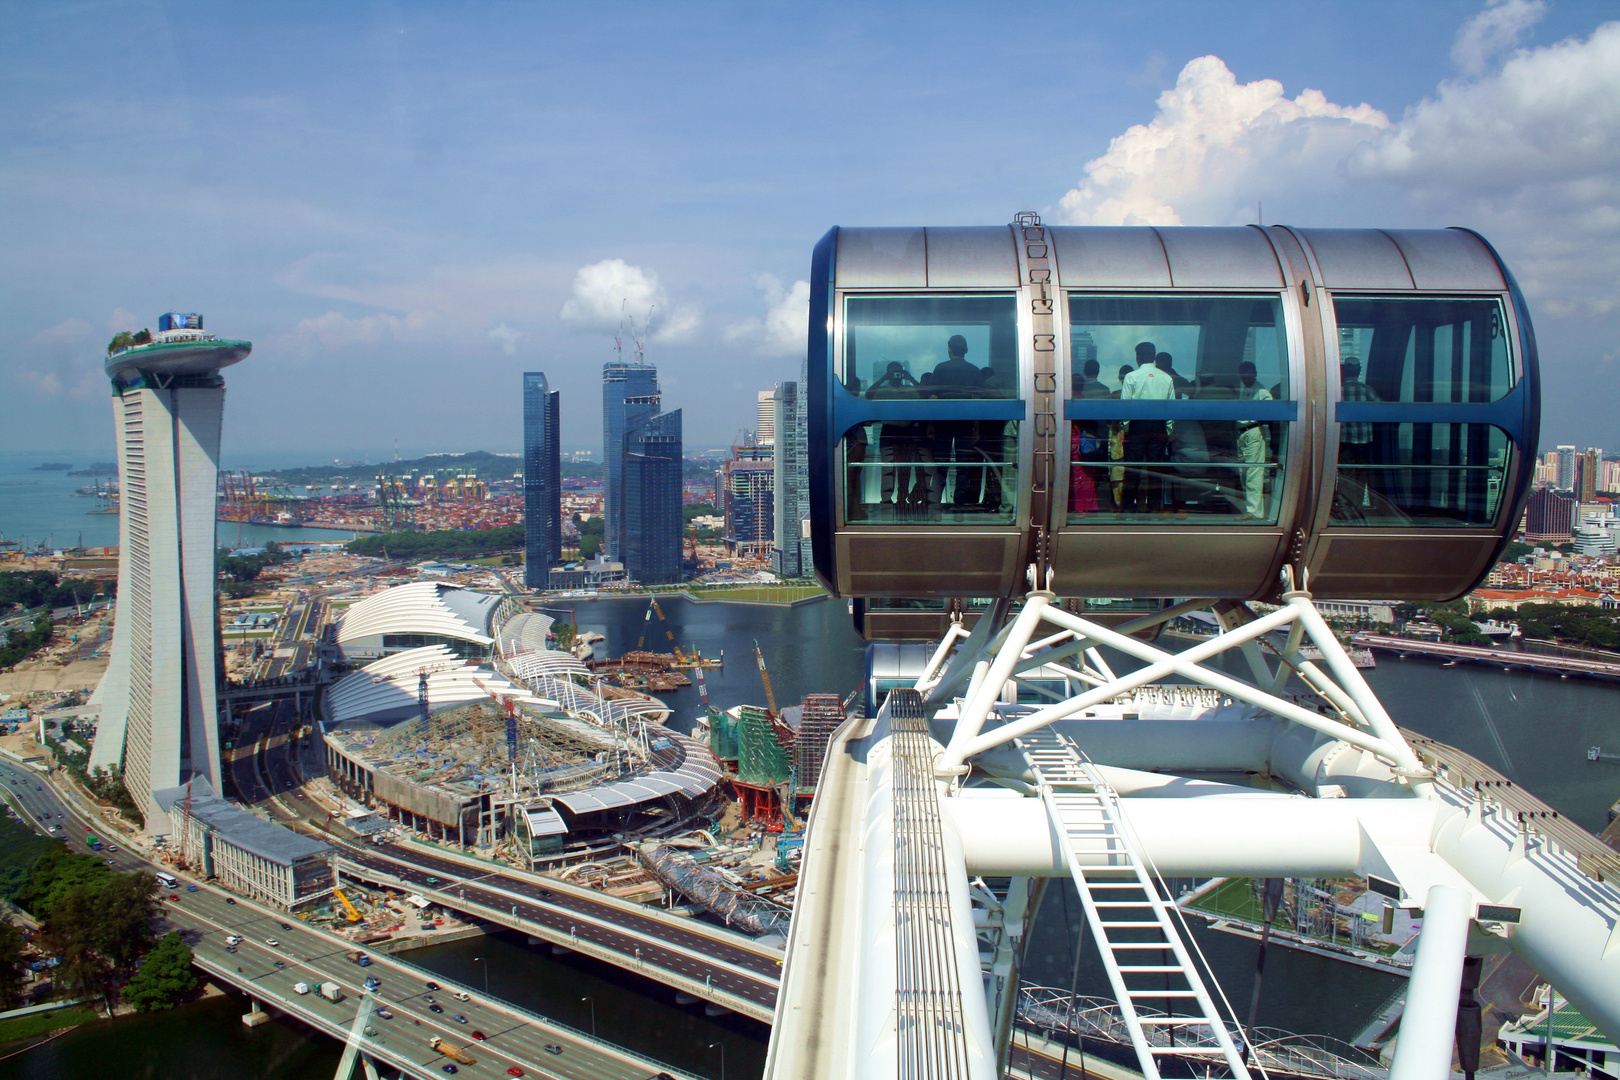 Singapore Flyer on the top